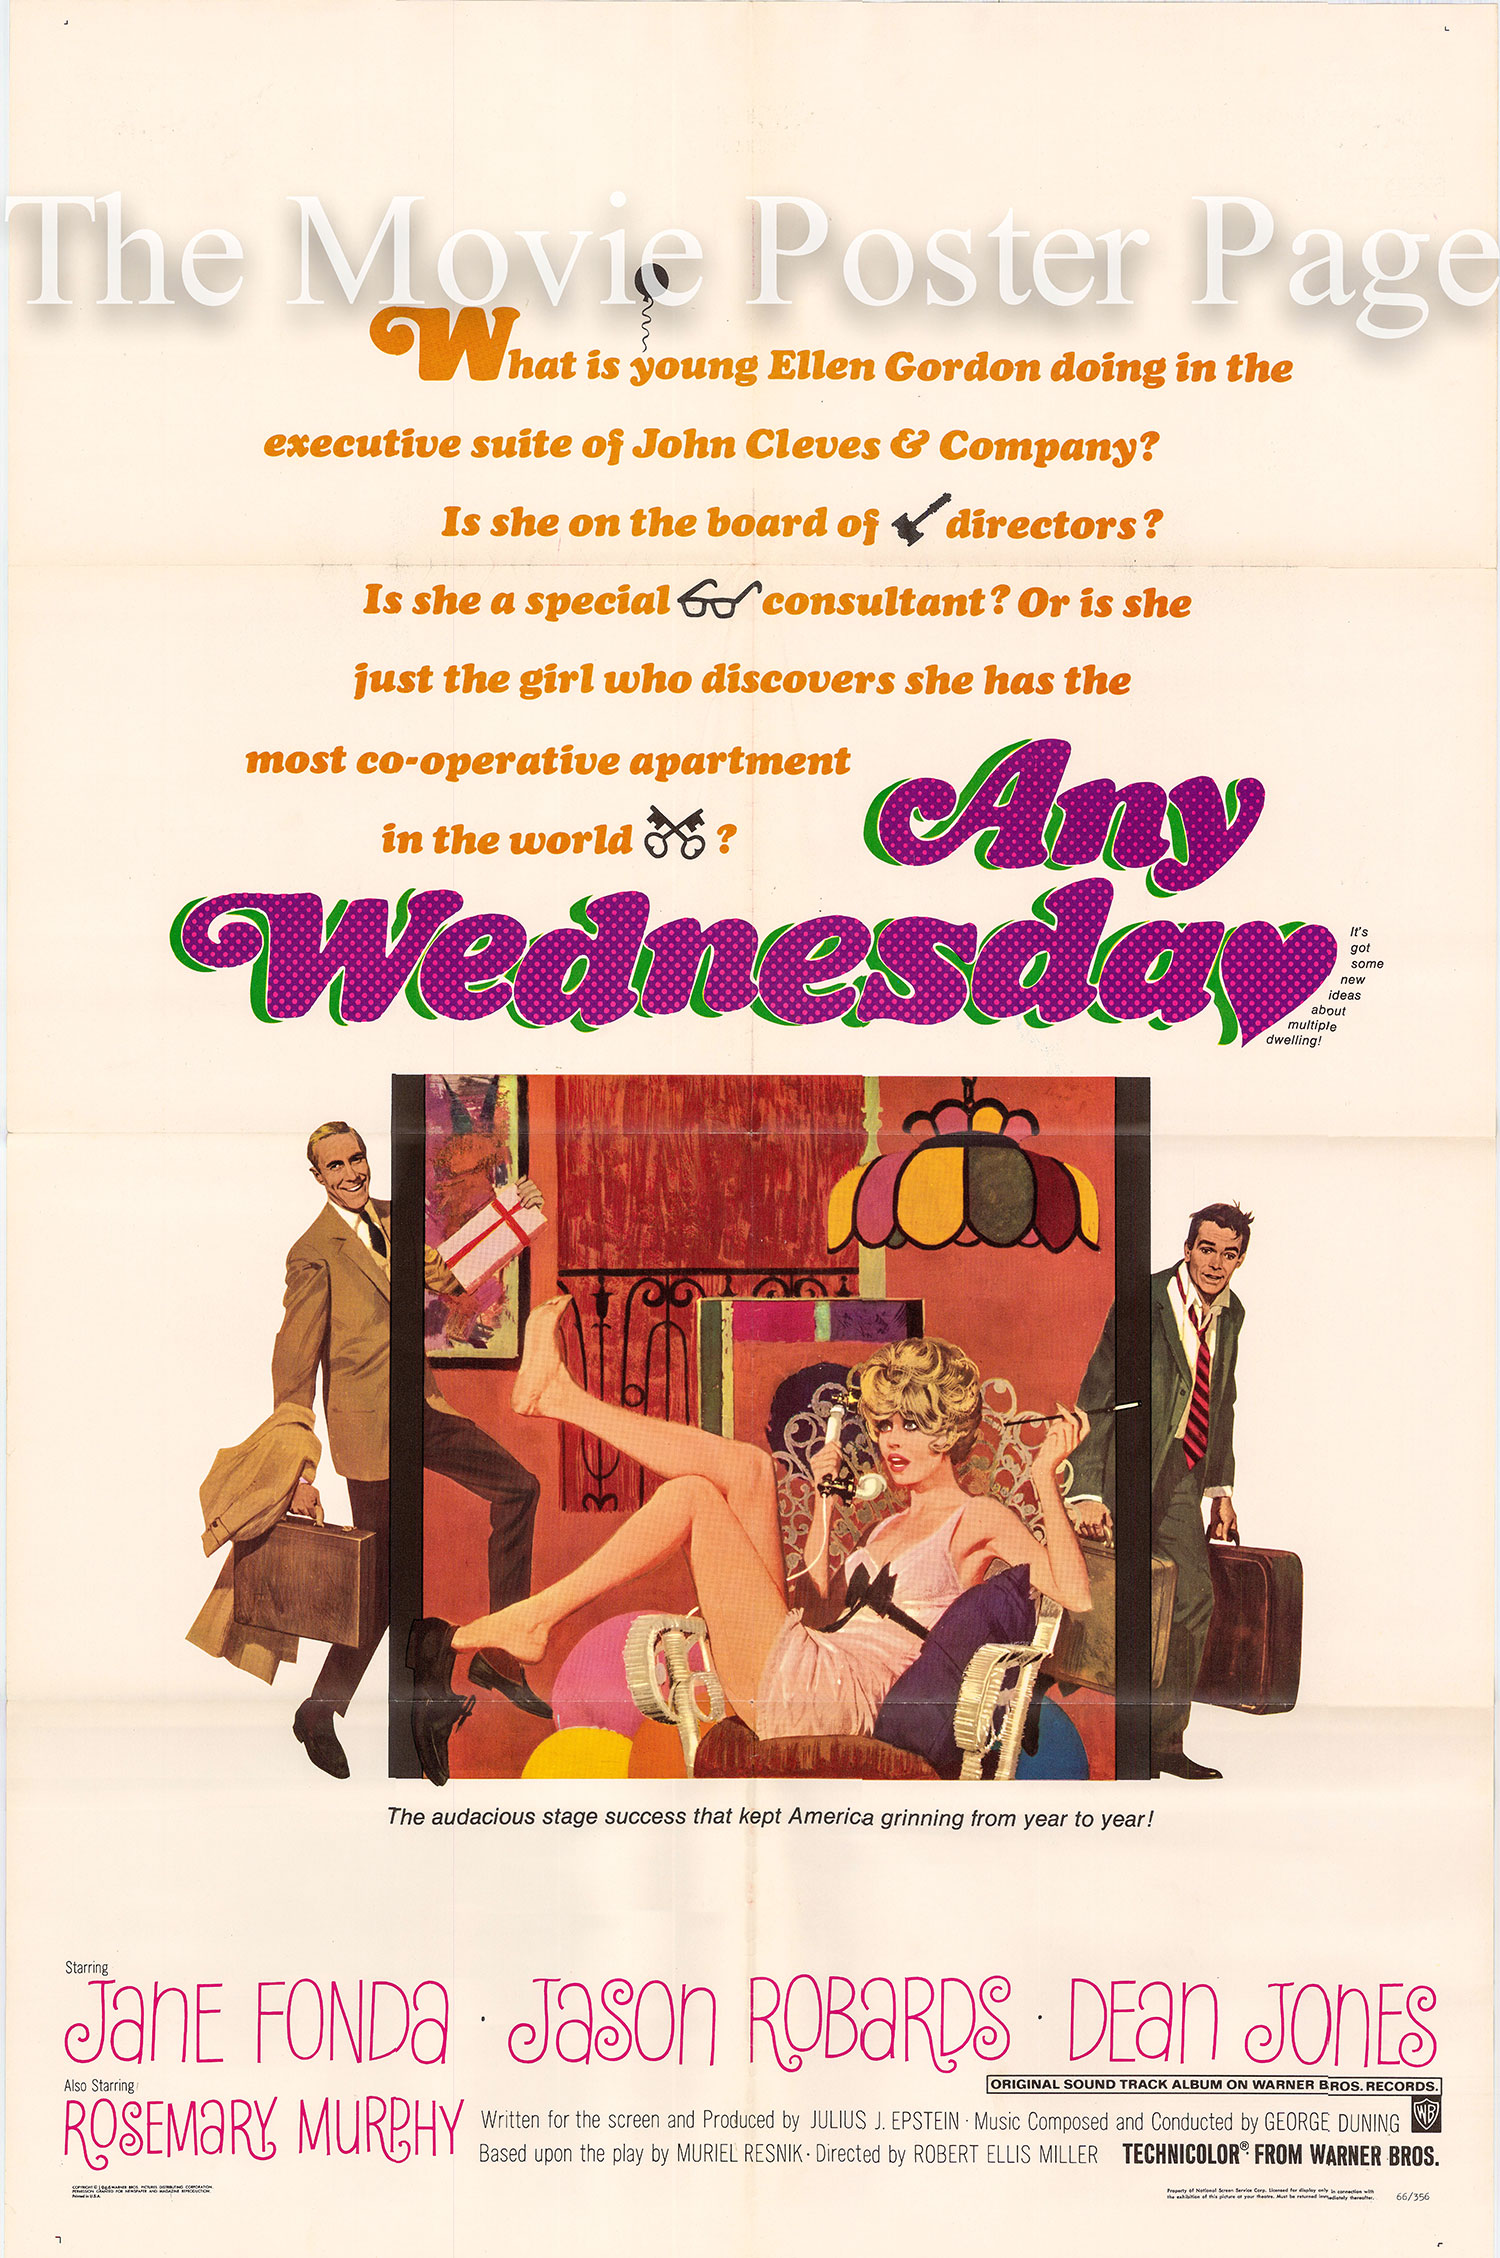 Pictured is a US one-sheet poster for the 1966 Robert Ellis Miller film Any Wednesday starring Jane Fonda.